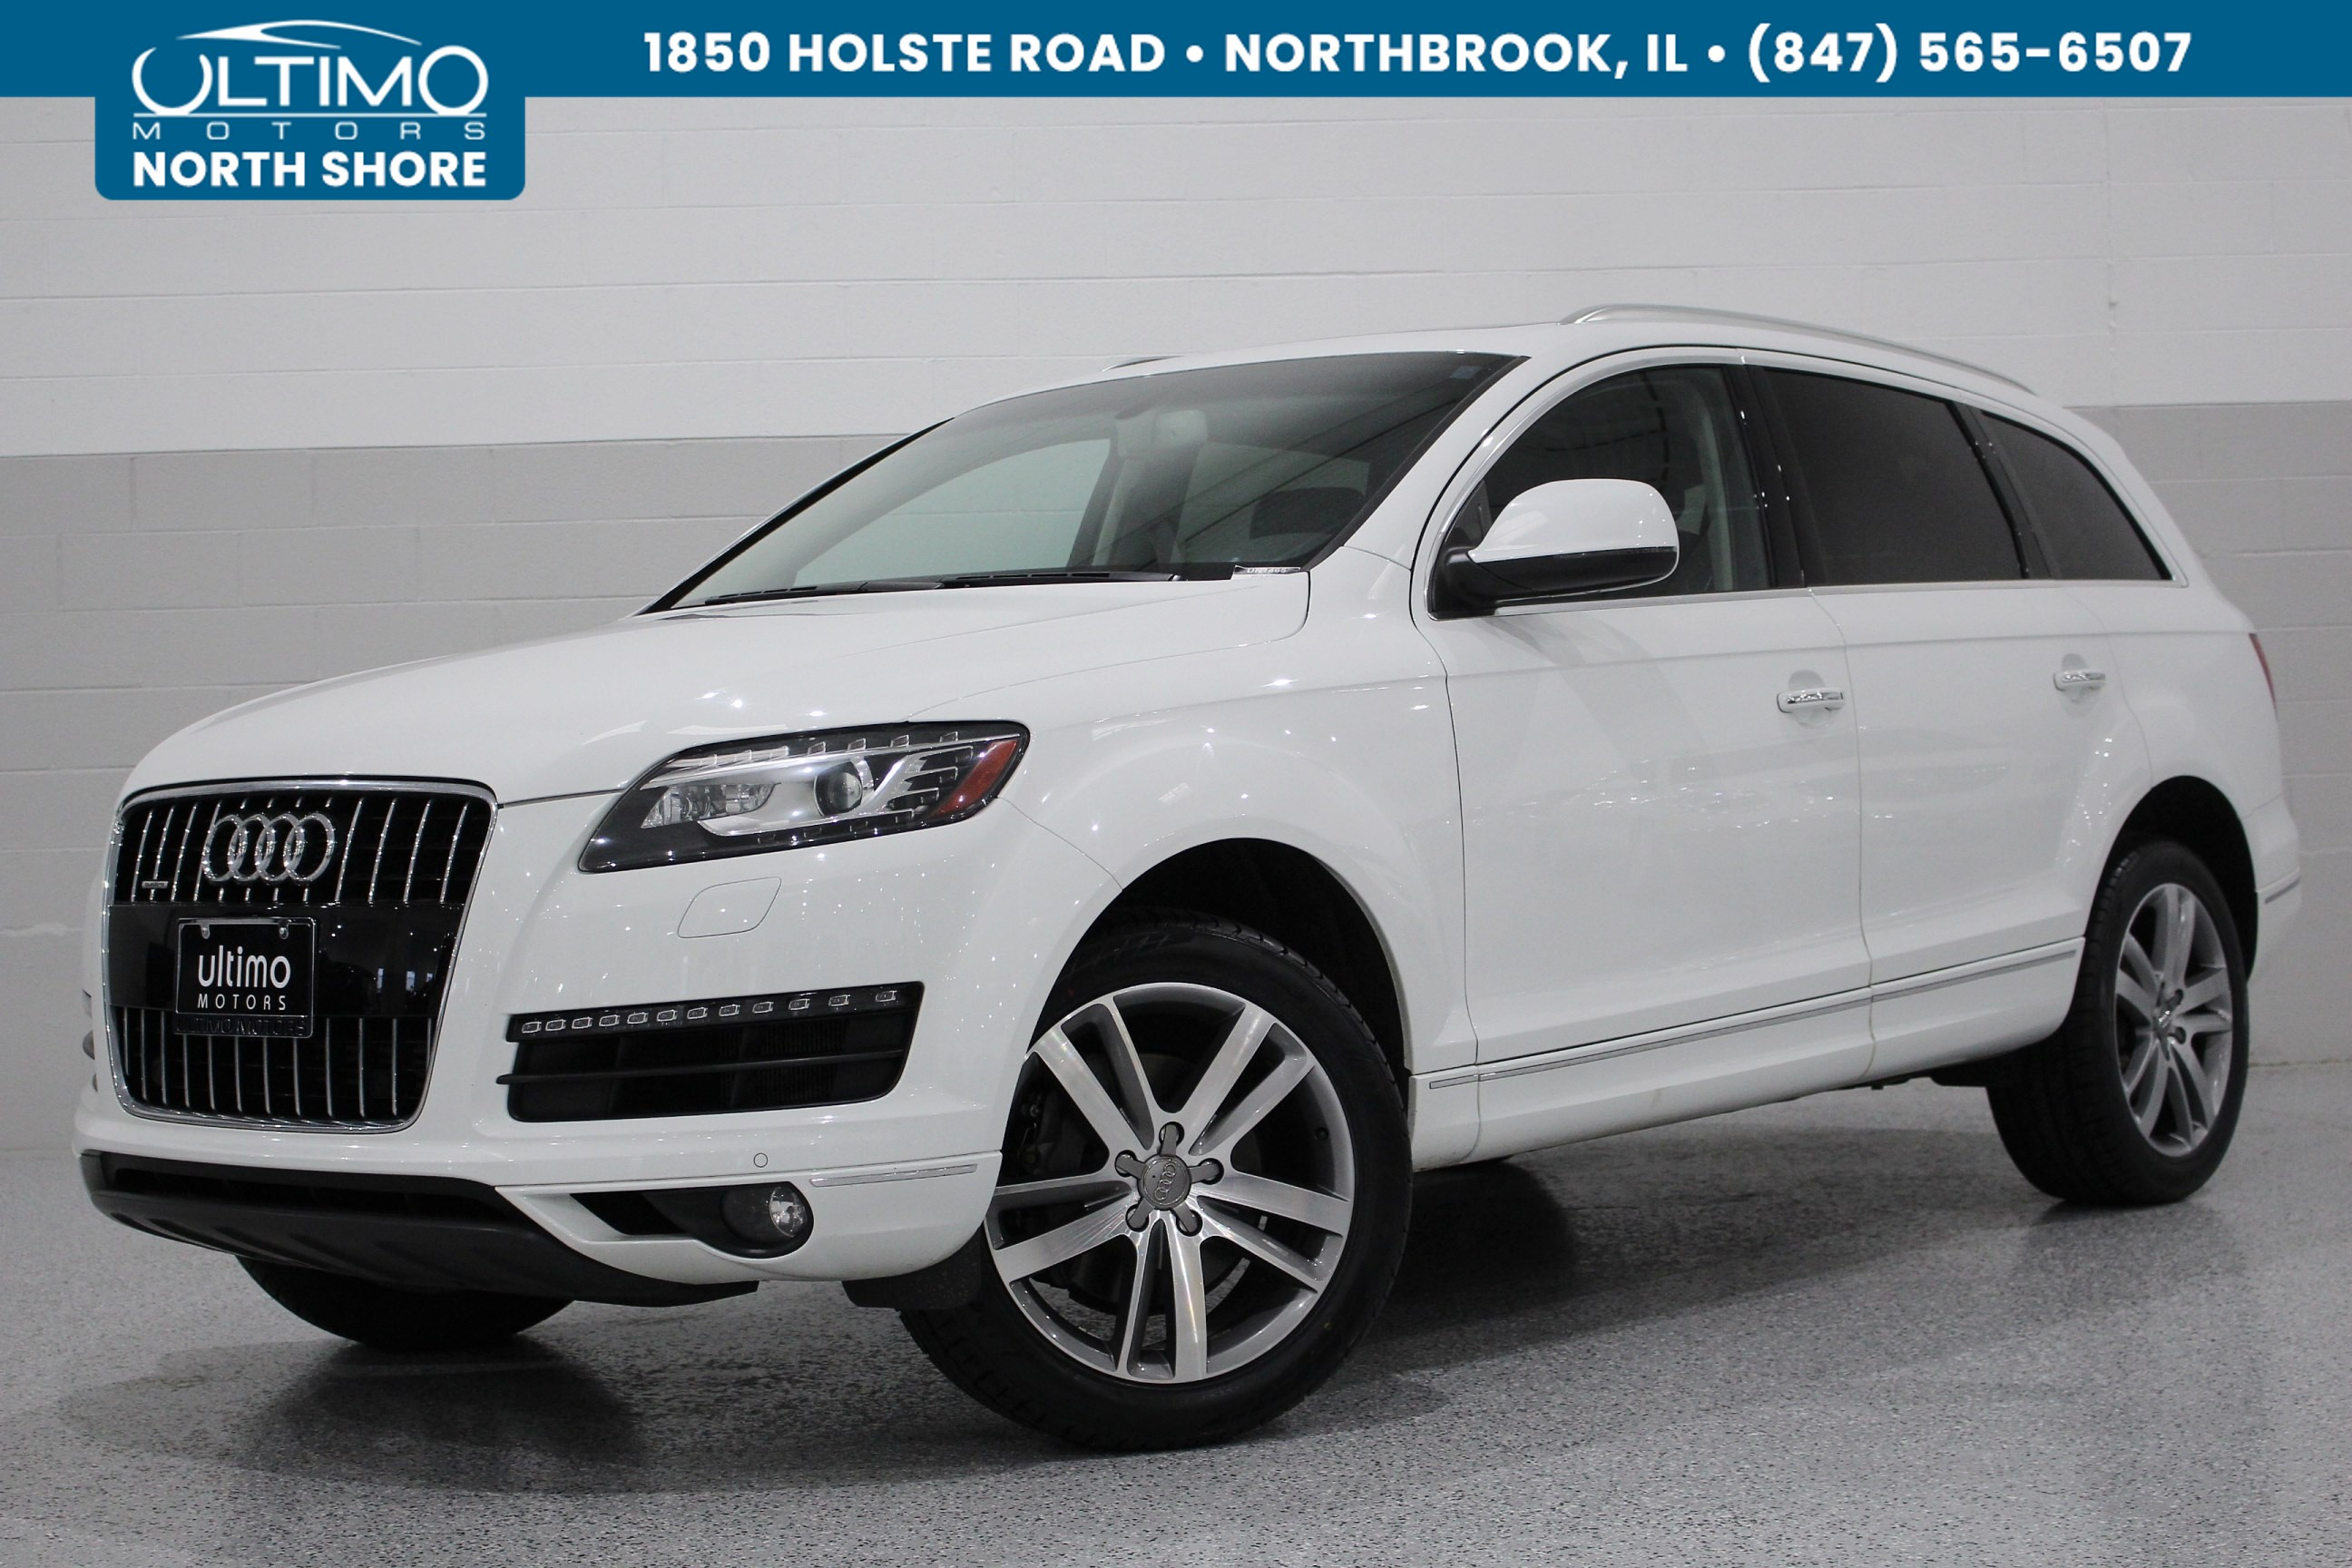 Pre-Owned 2015 Audi Q7 3.0T Pano Roof, Cold Weather F&R, BOSE.